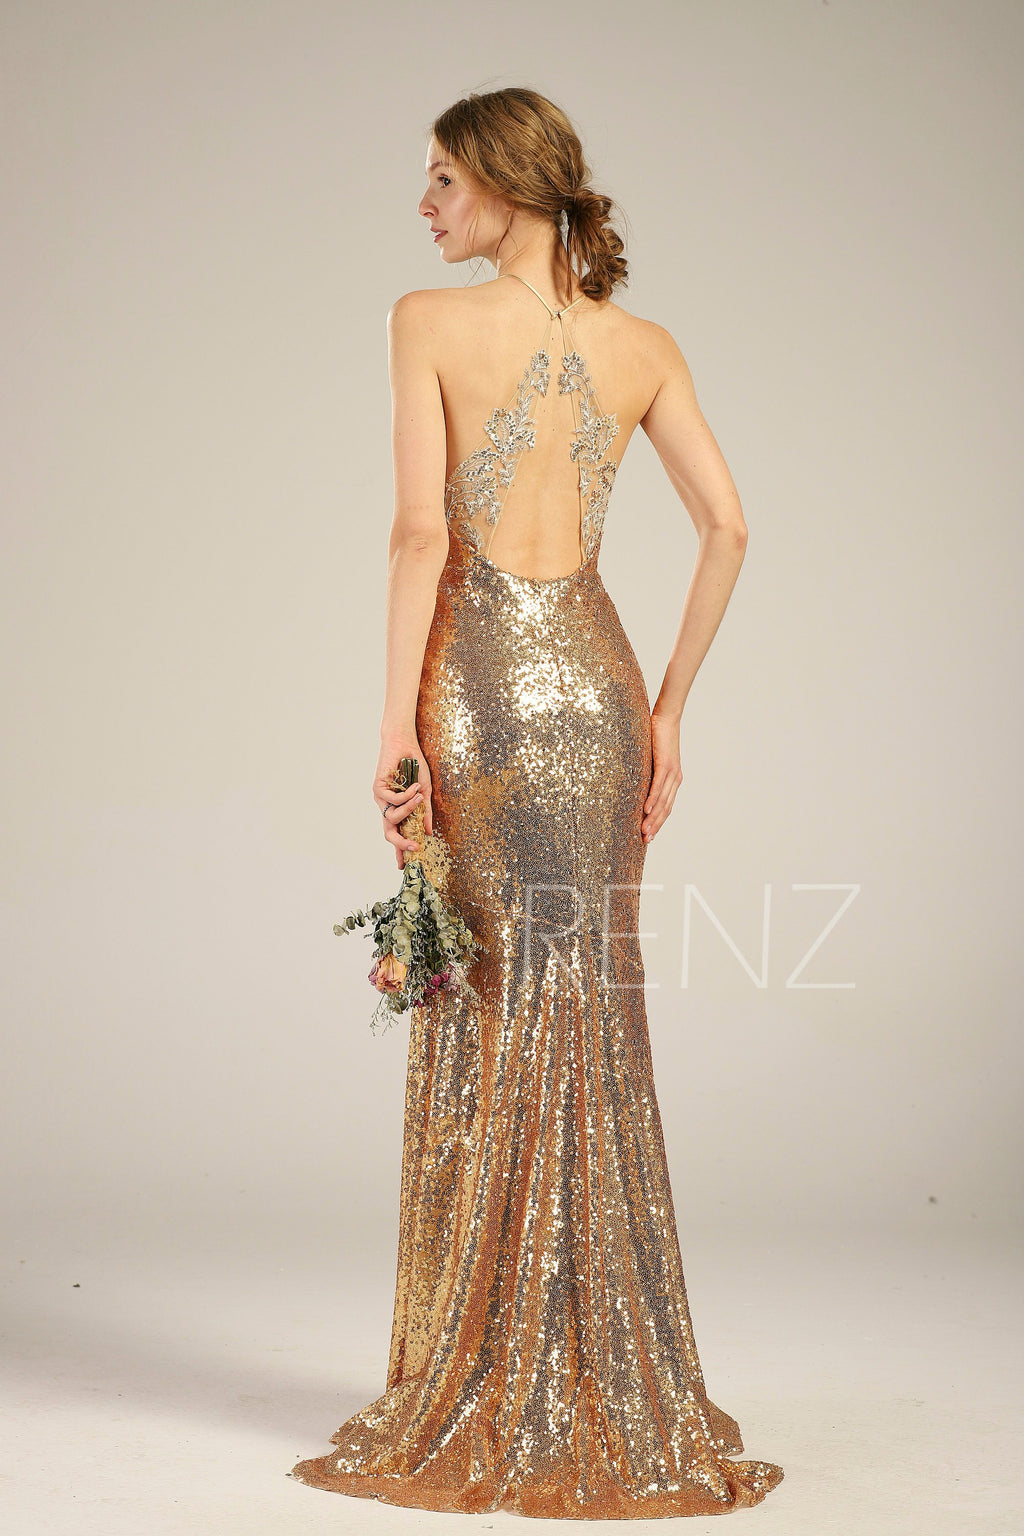 Bridesmaid Dress Gold Sequin Dress Wedding Dress Halter Neck Bodycon Party Dress Lace Illusion Open Back Evening Dress Train Dress(HQ433)